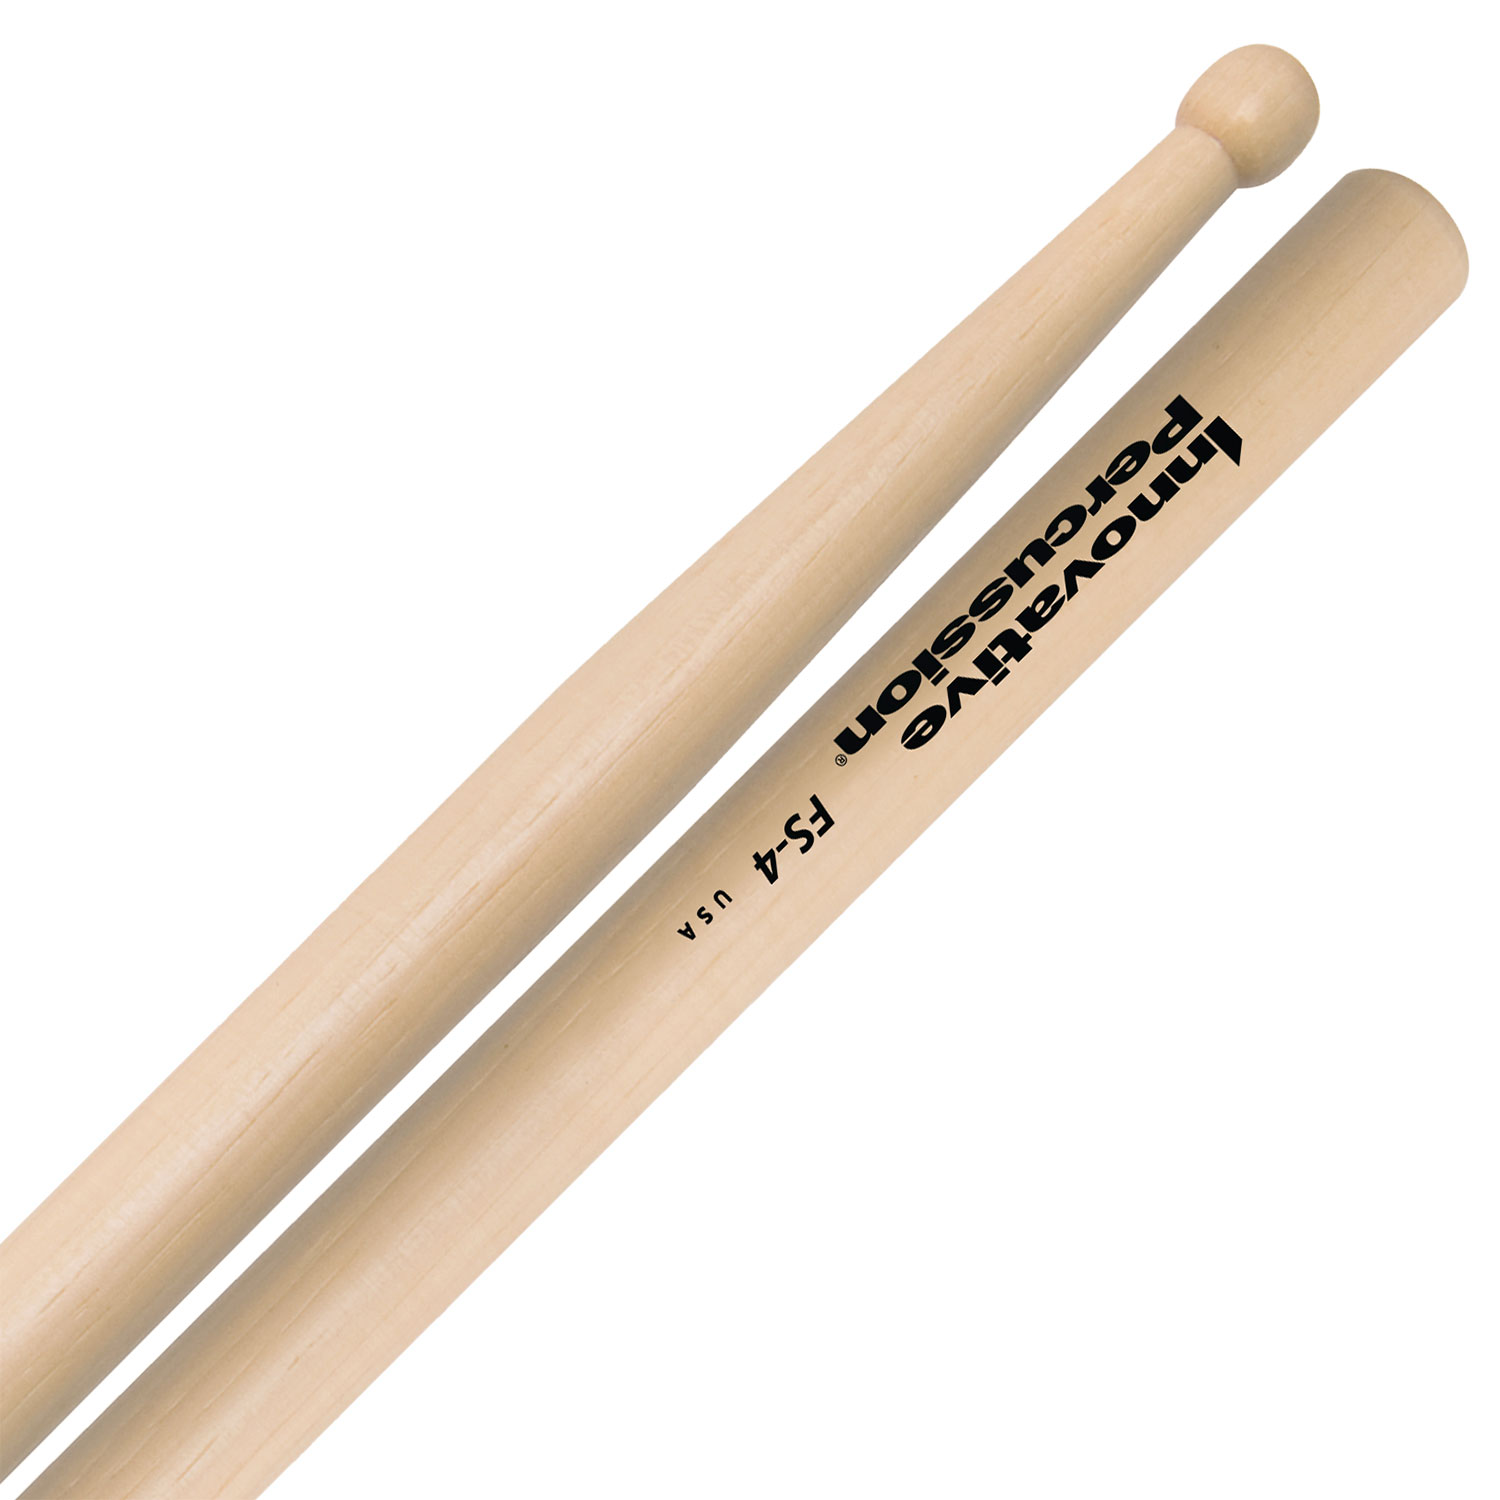 Innovative Percussion FS-4 Field Series Marching Snare Drum Sticks